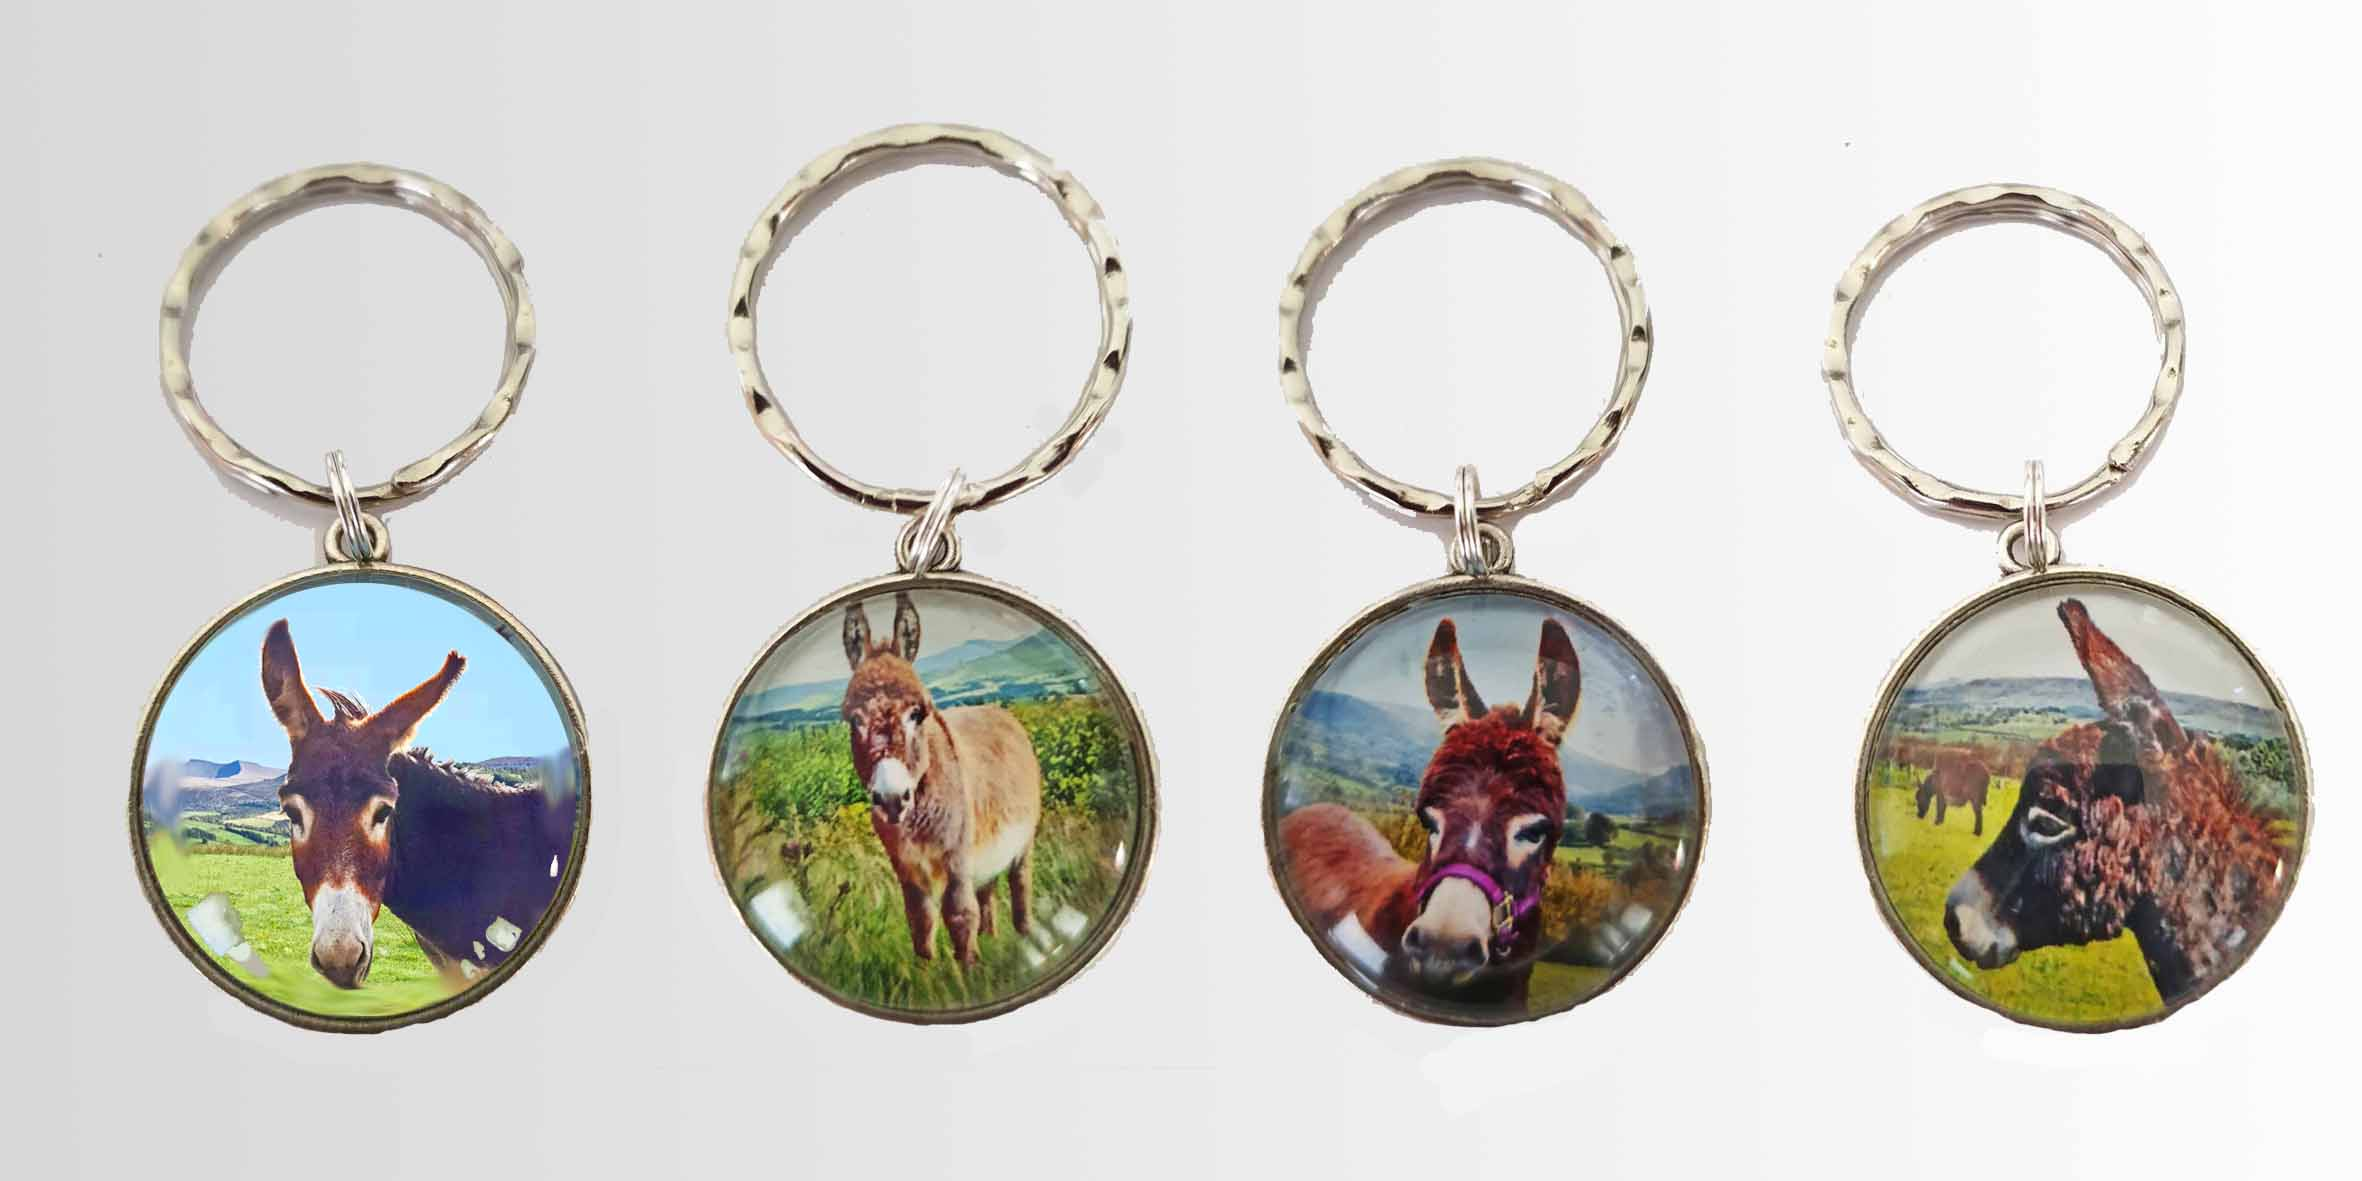 mini donkey key rings make great presents